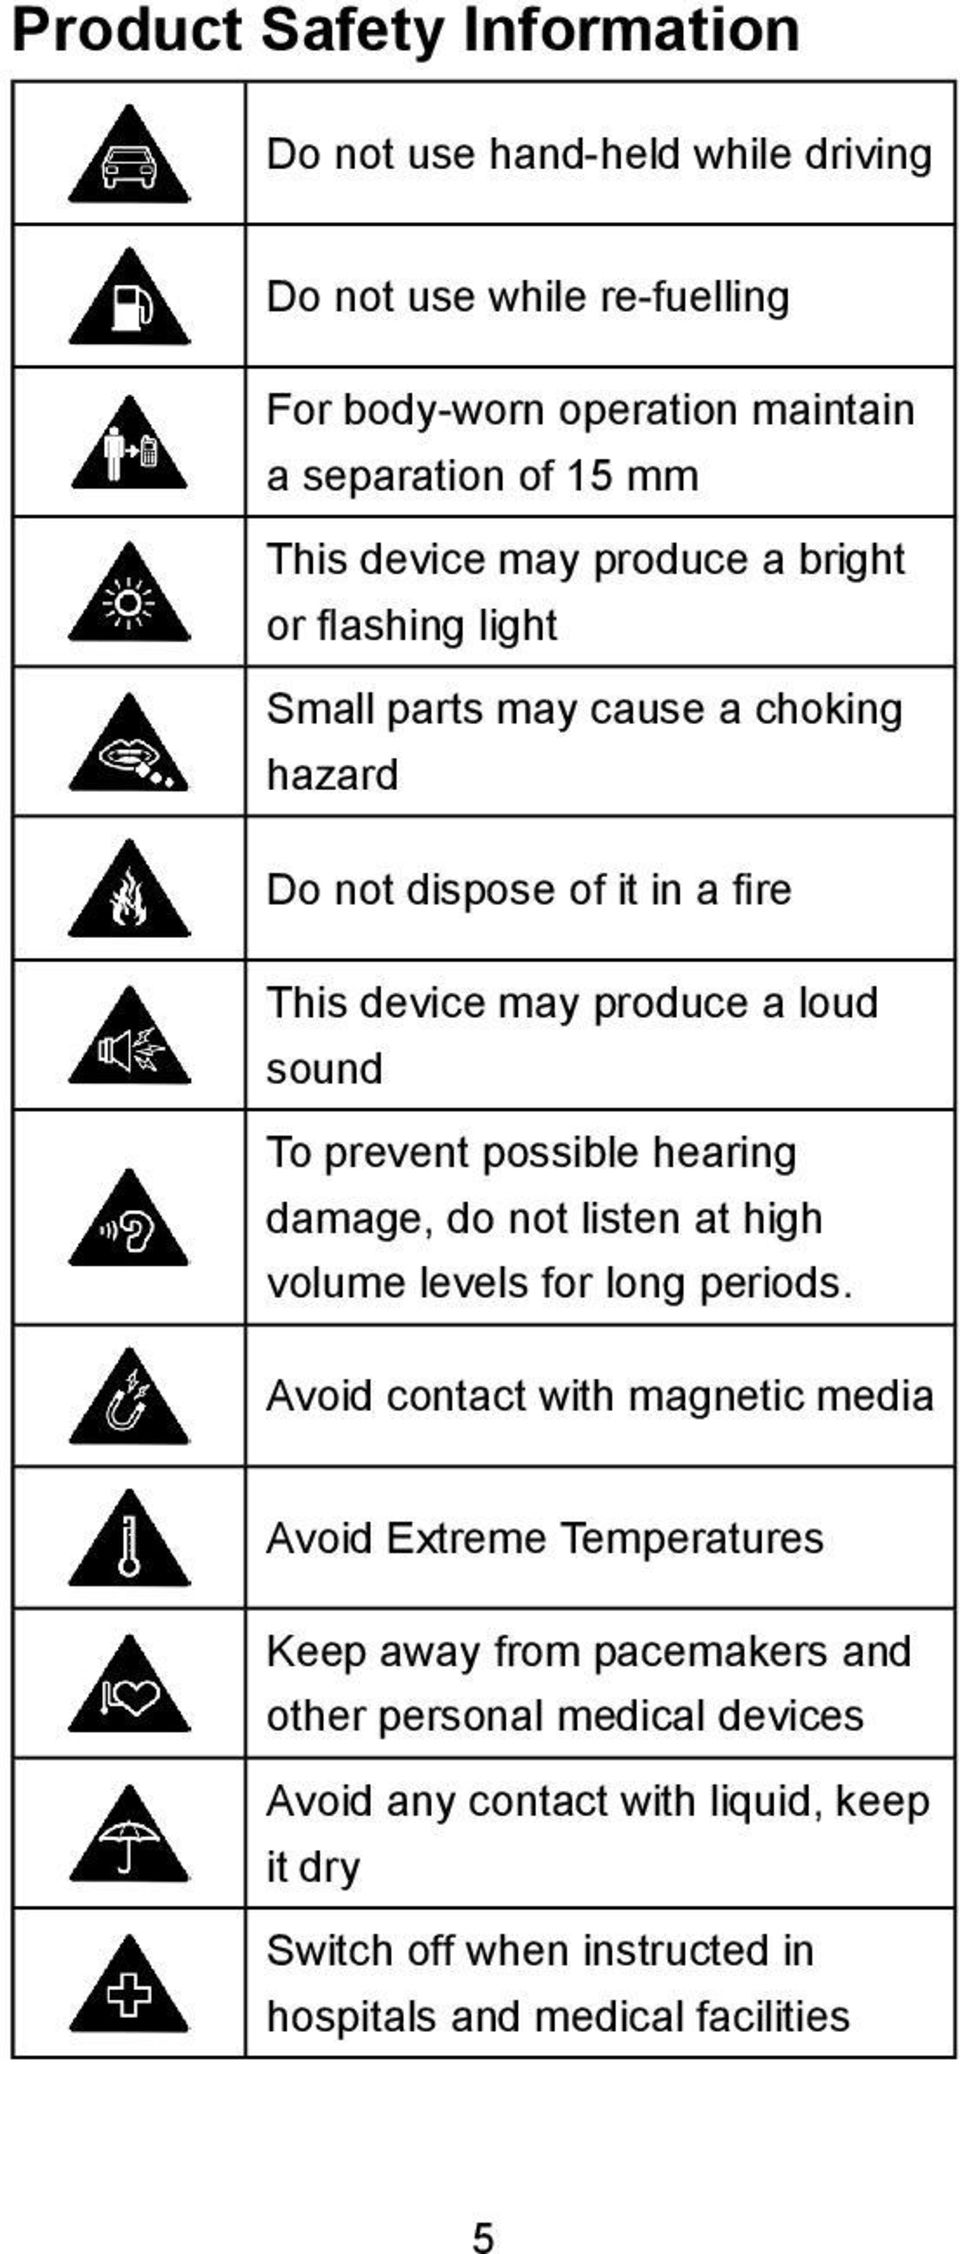 prevent possible hearing damage, do not listen at high volume levels for long periods.